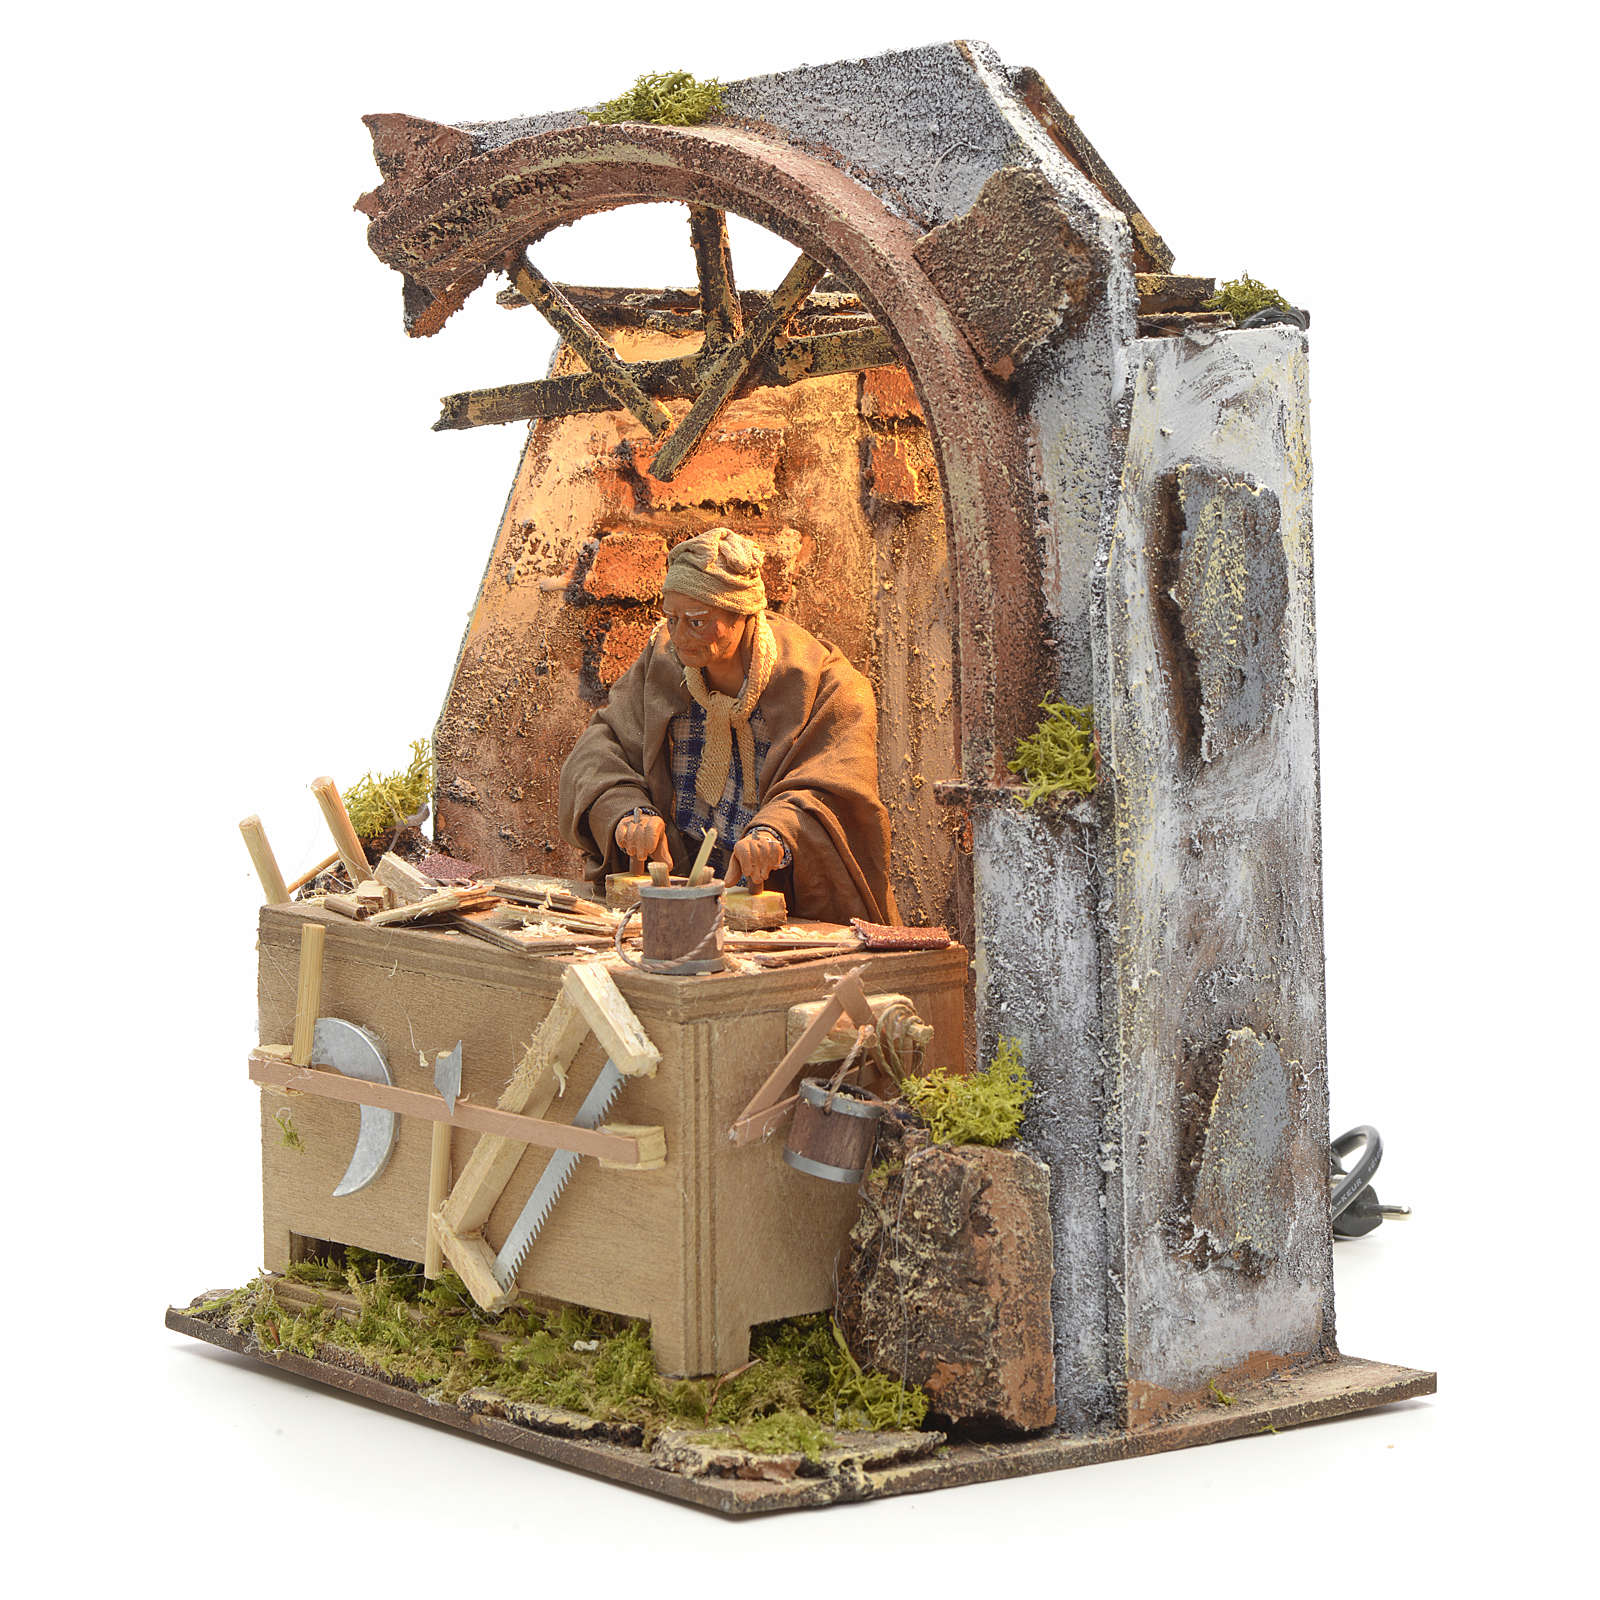 Animated Nativity scene set, carpenter 14 cm 4